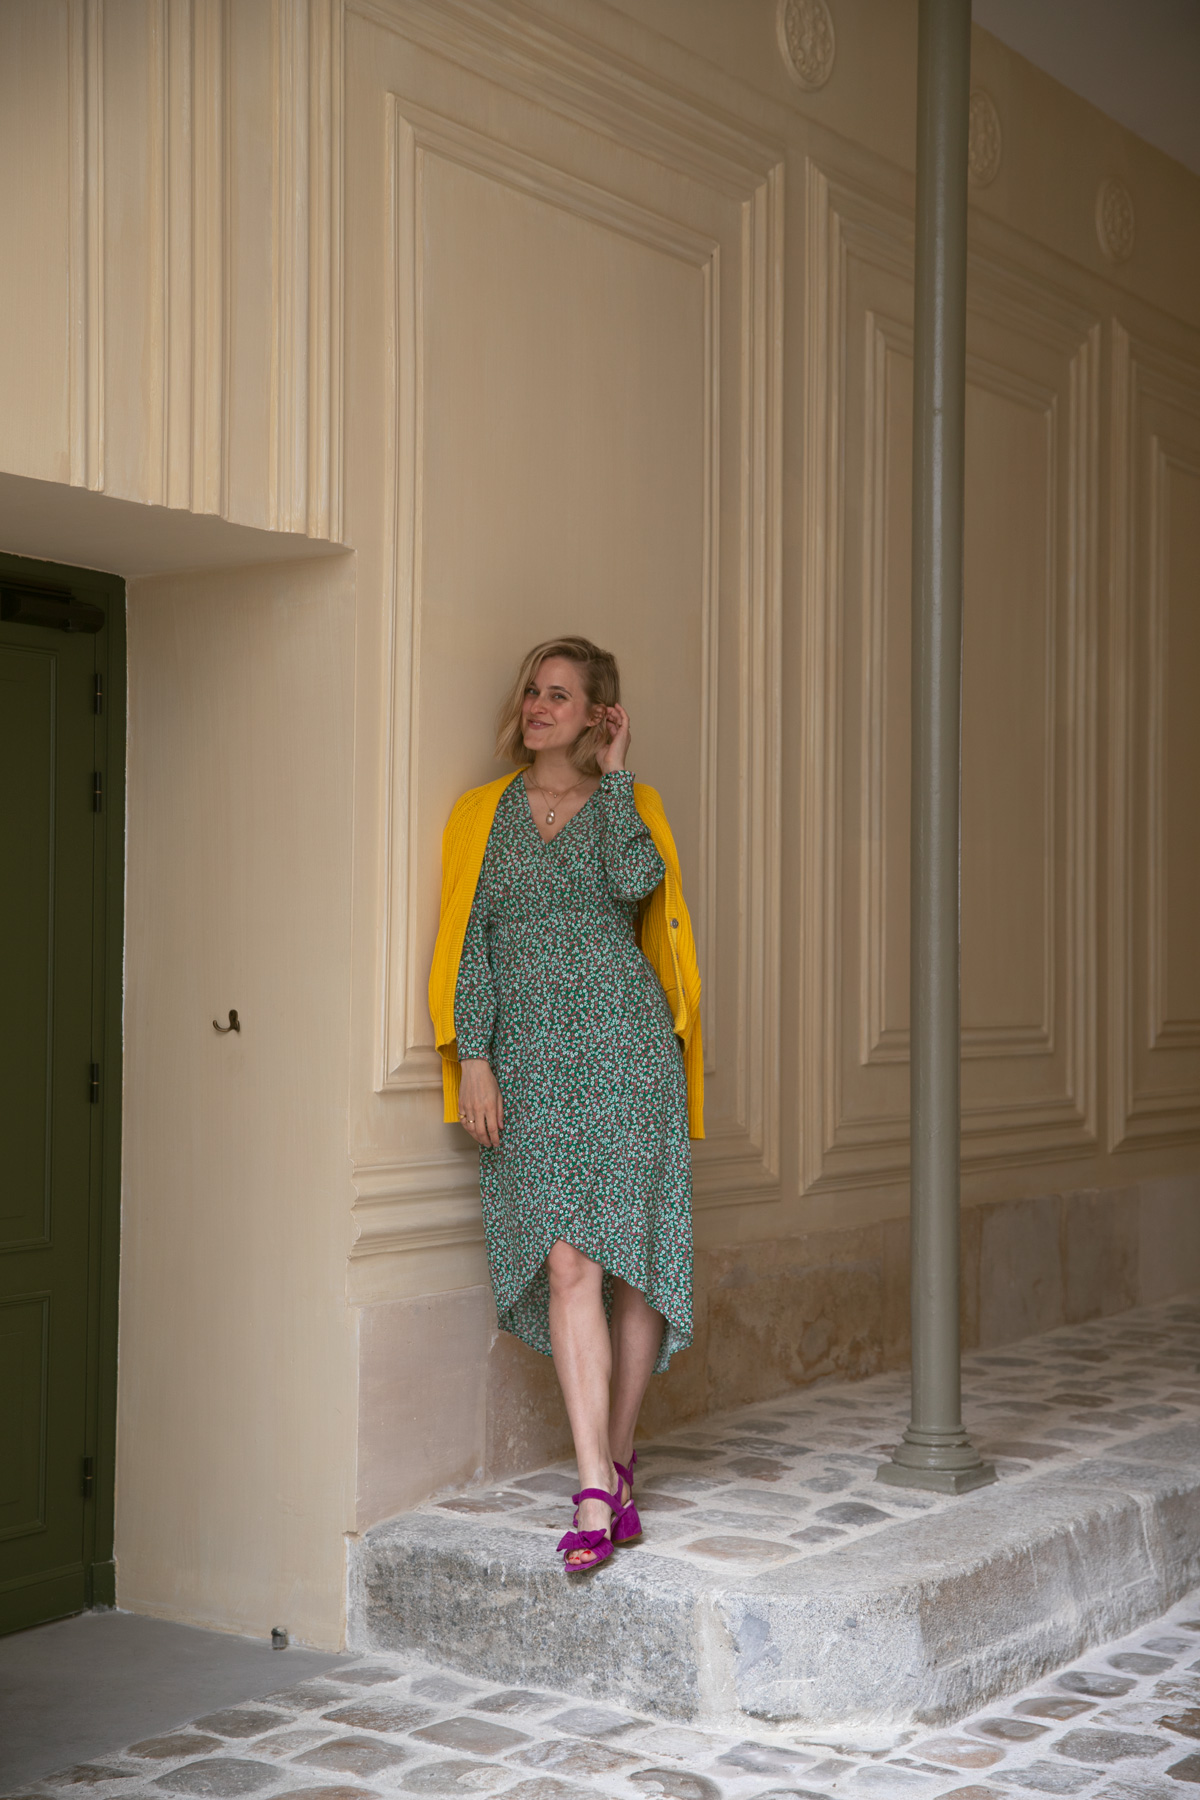 Rockpaperdresses, Selected Femme, Cathrine Widunok Wichmand, Hoxton Paris